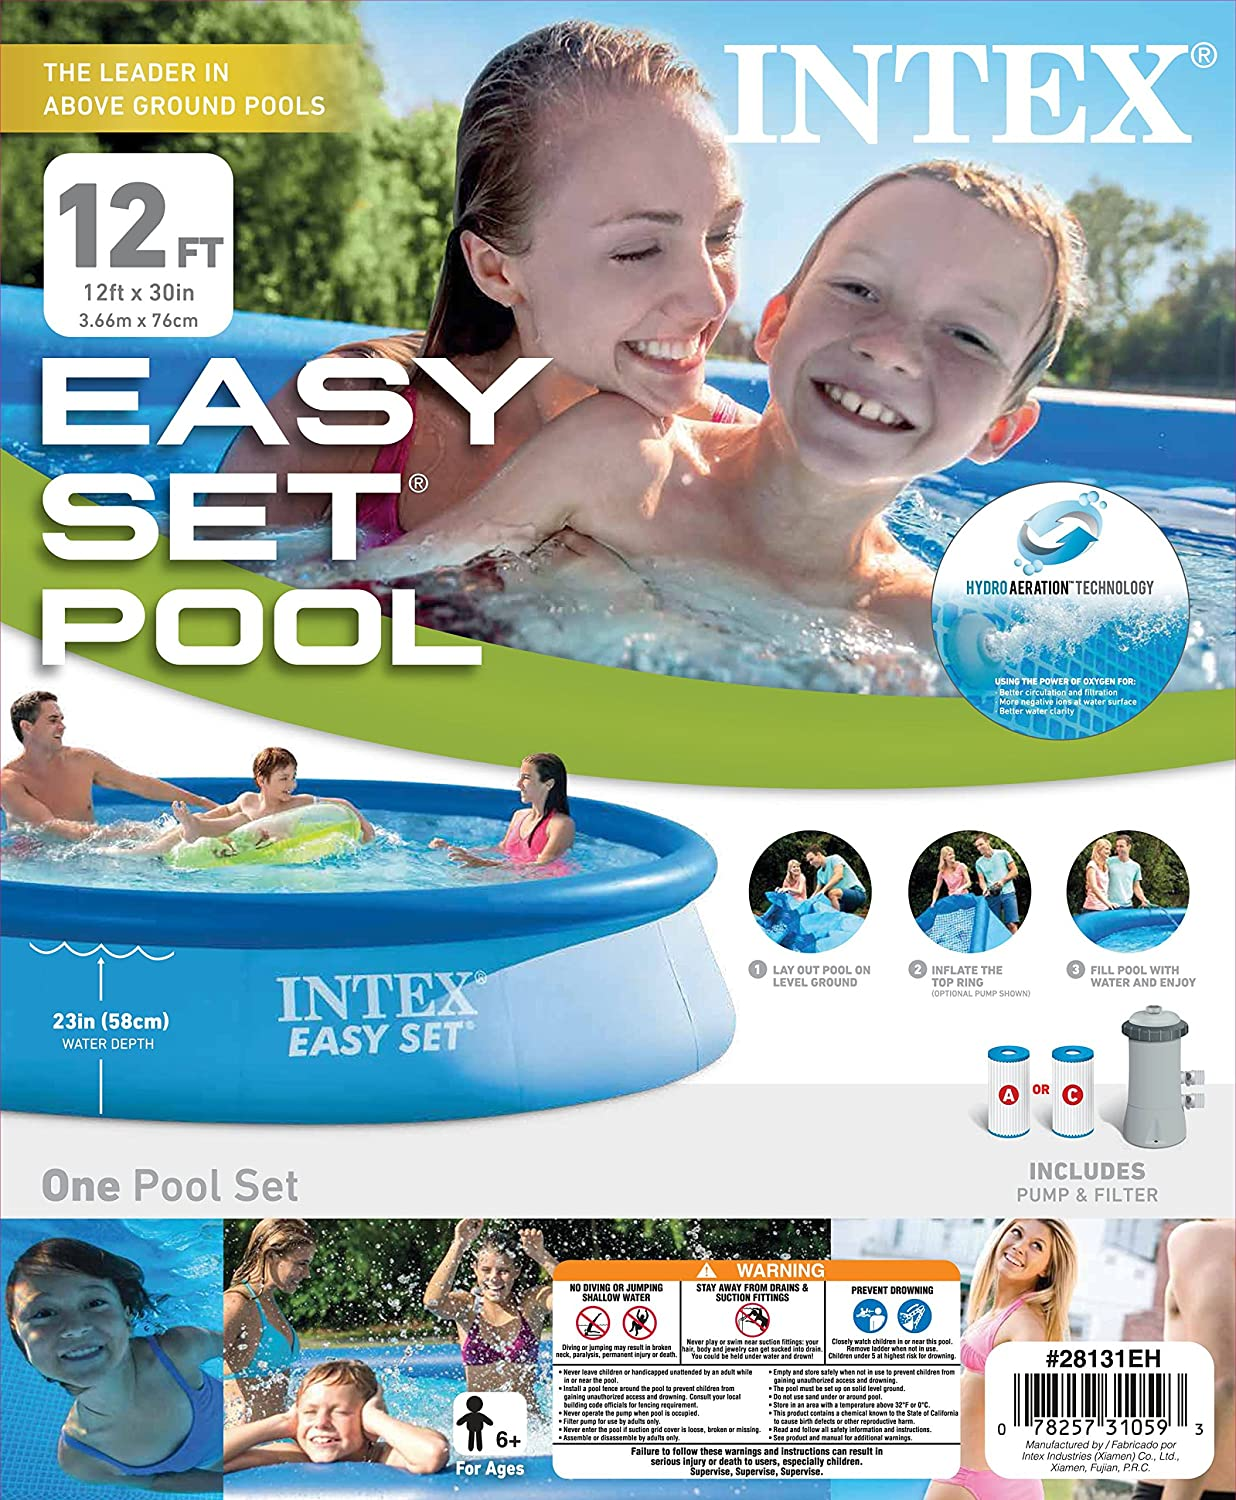 Filter Pump /& Krill Automatic Vacuum Intex 12 x 30 Easy Set Above Ground Pool